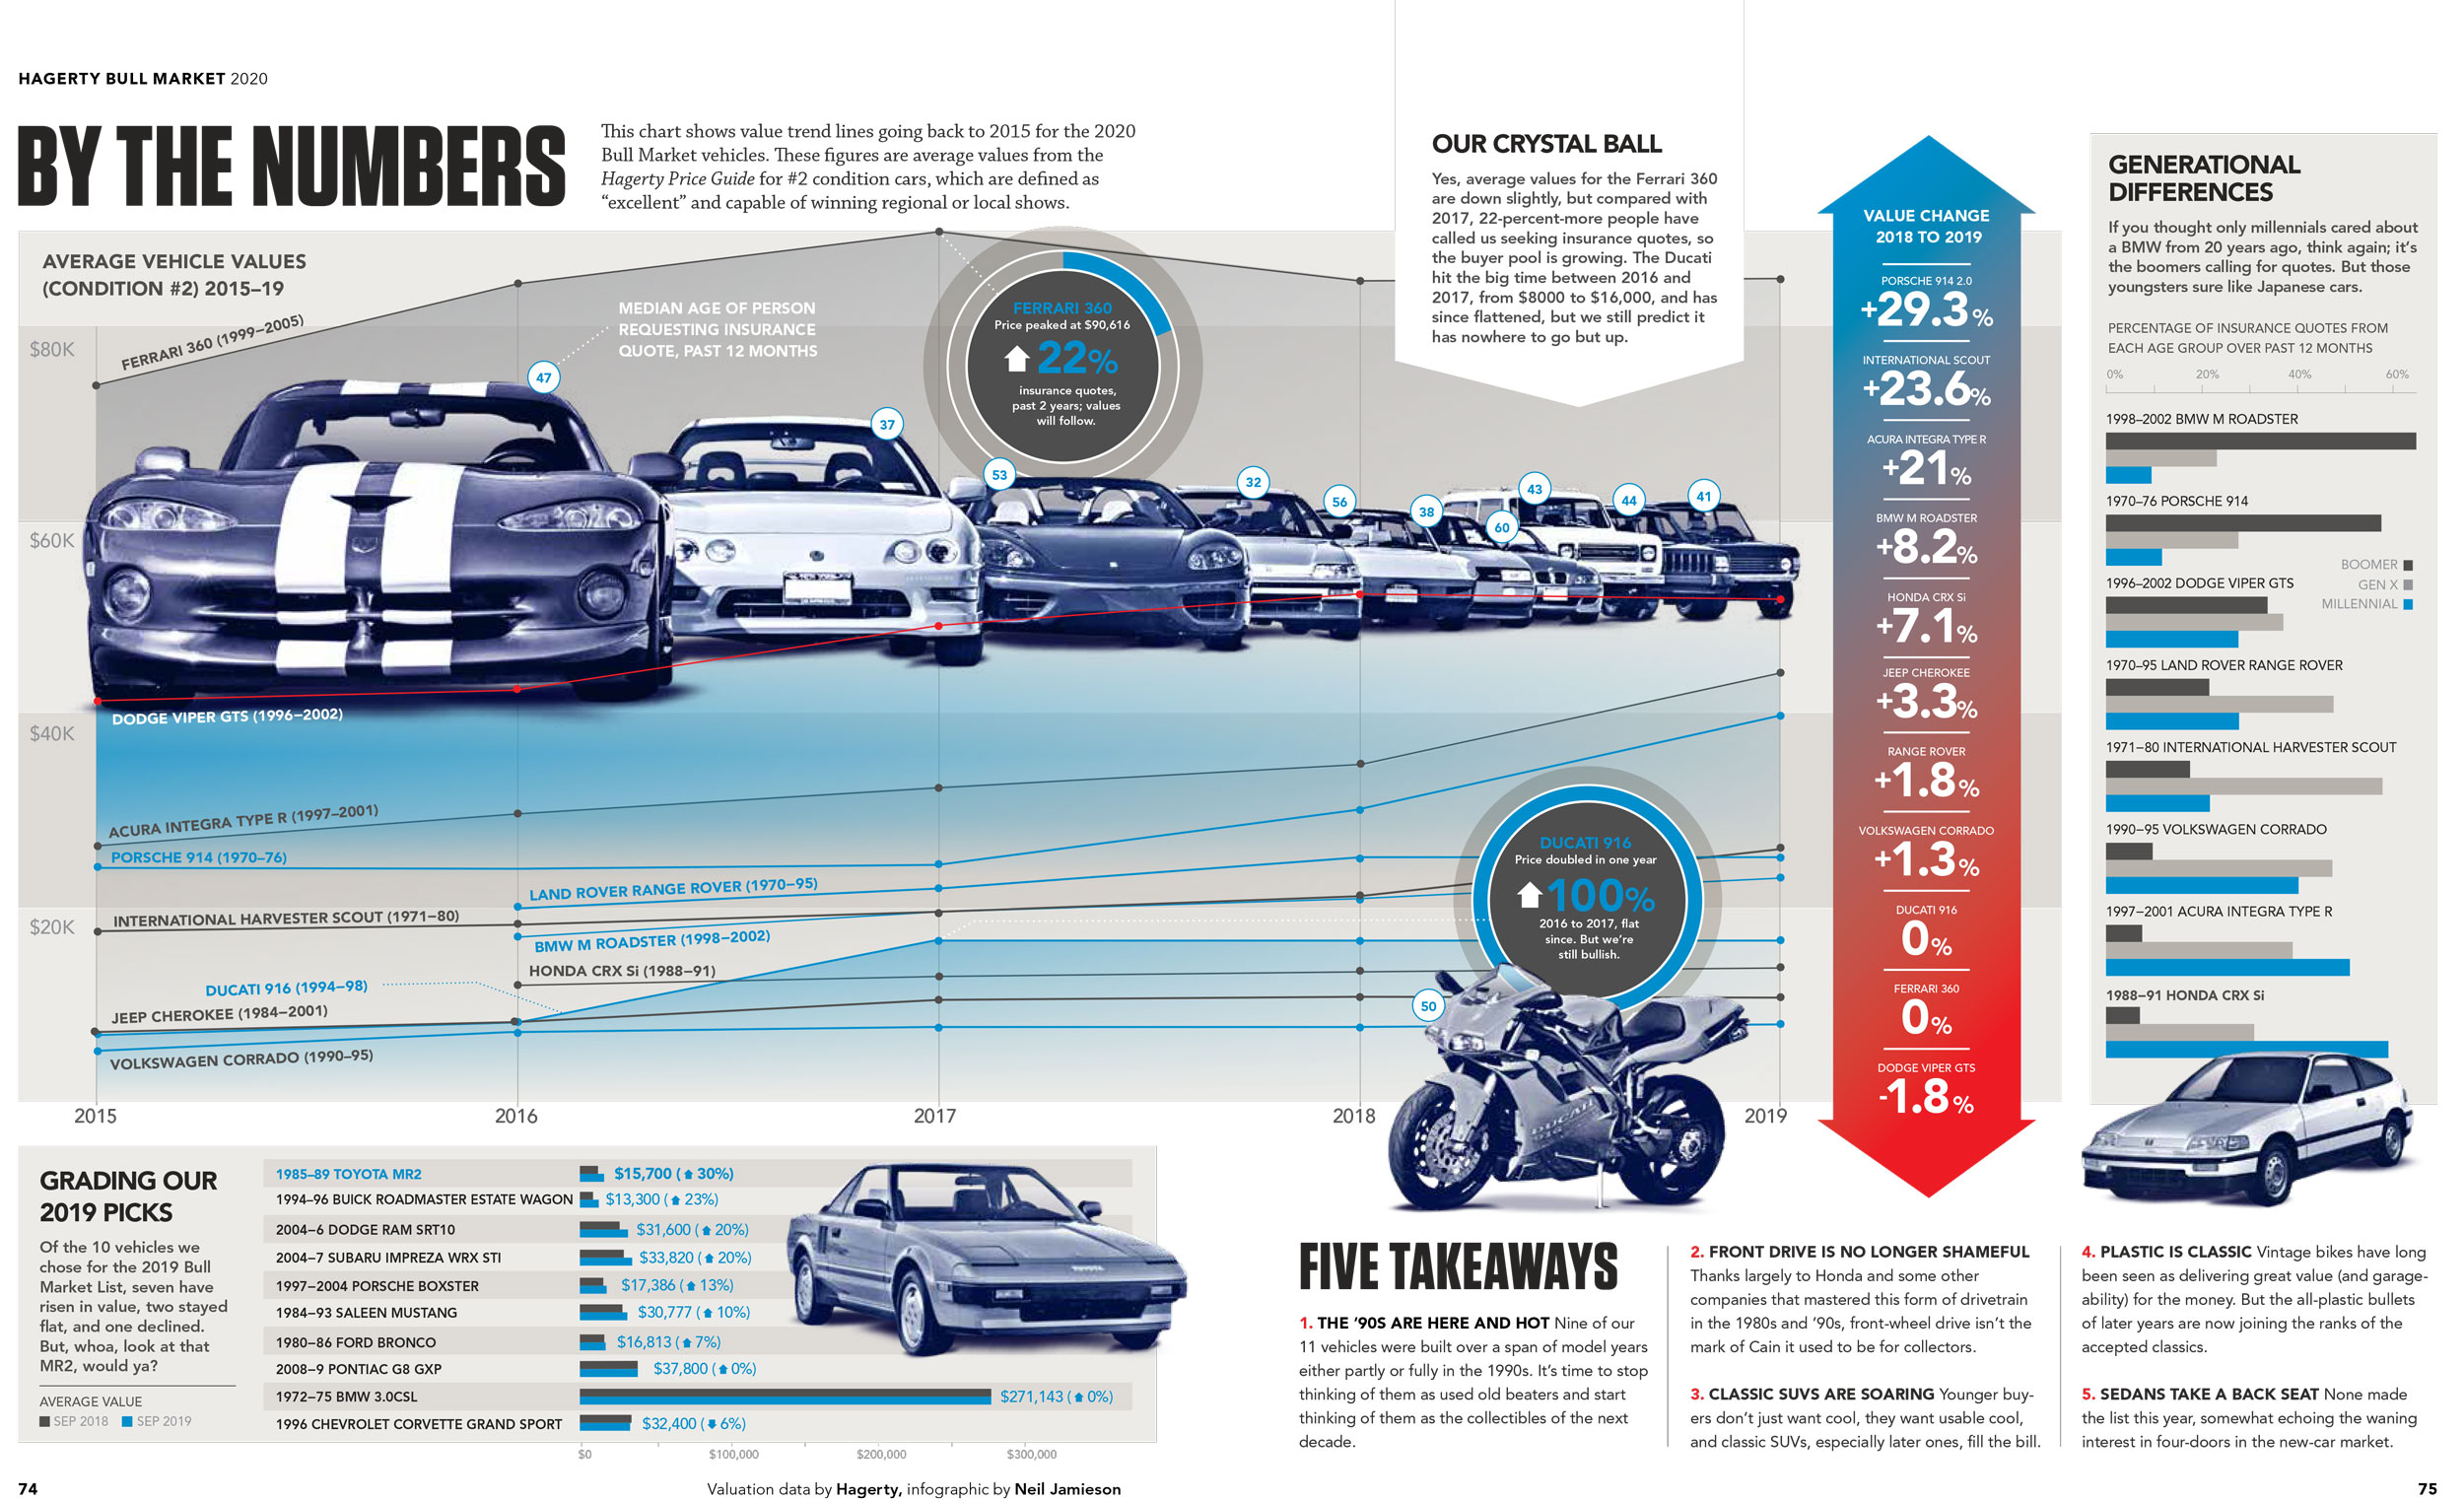 Hagerty Bull Market 2020 infographic